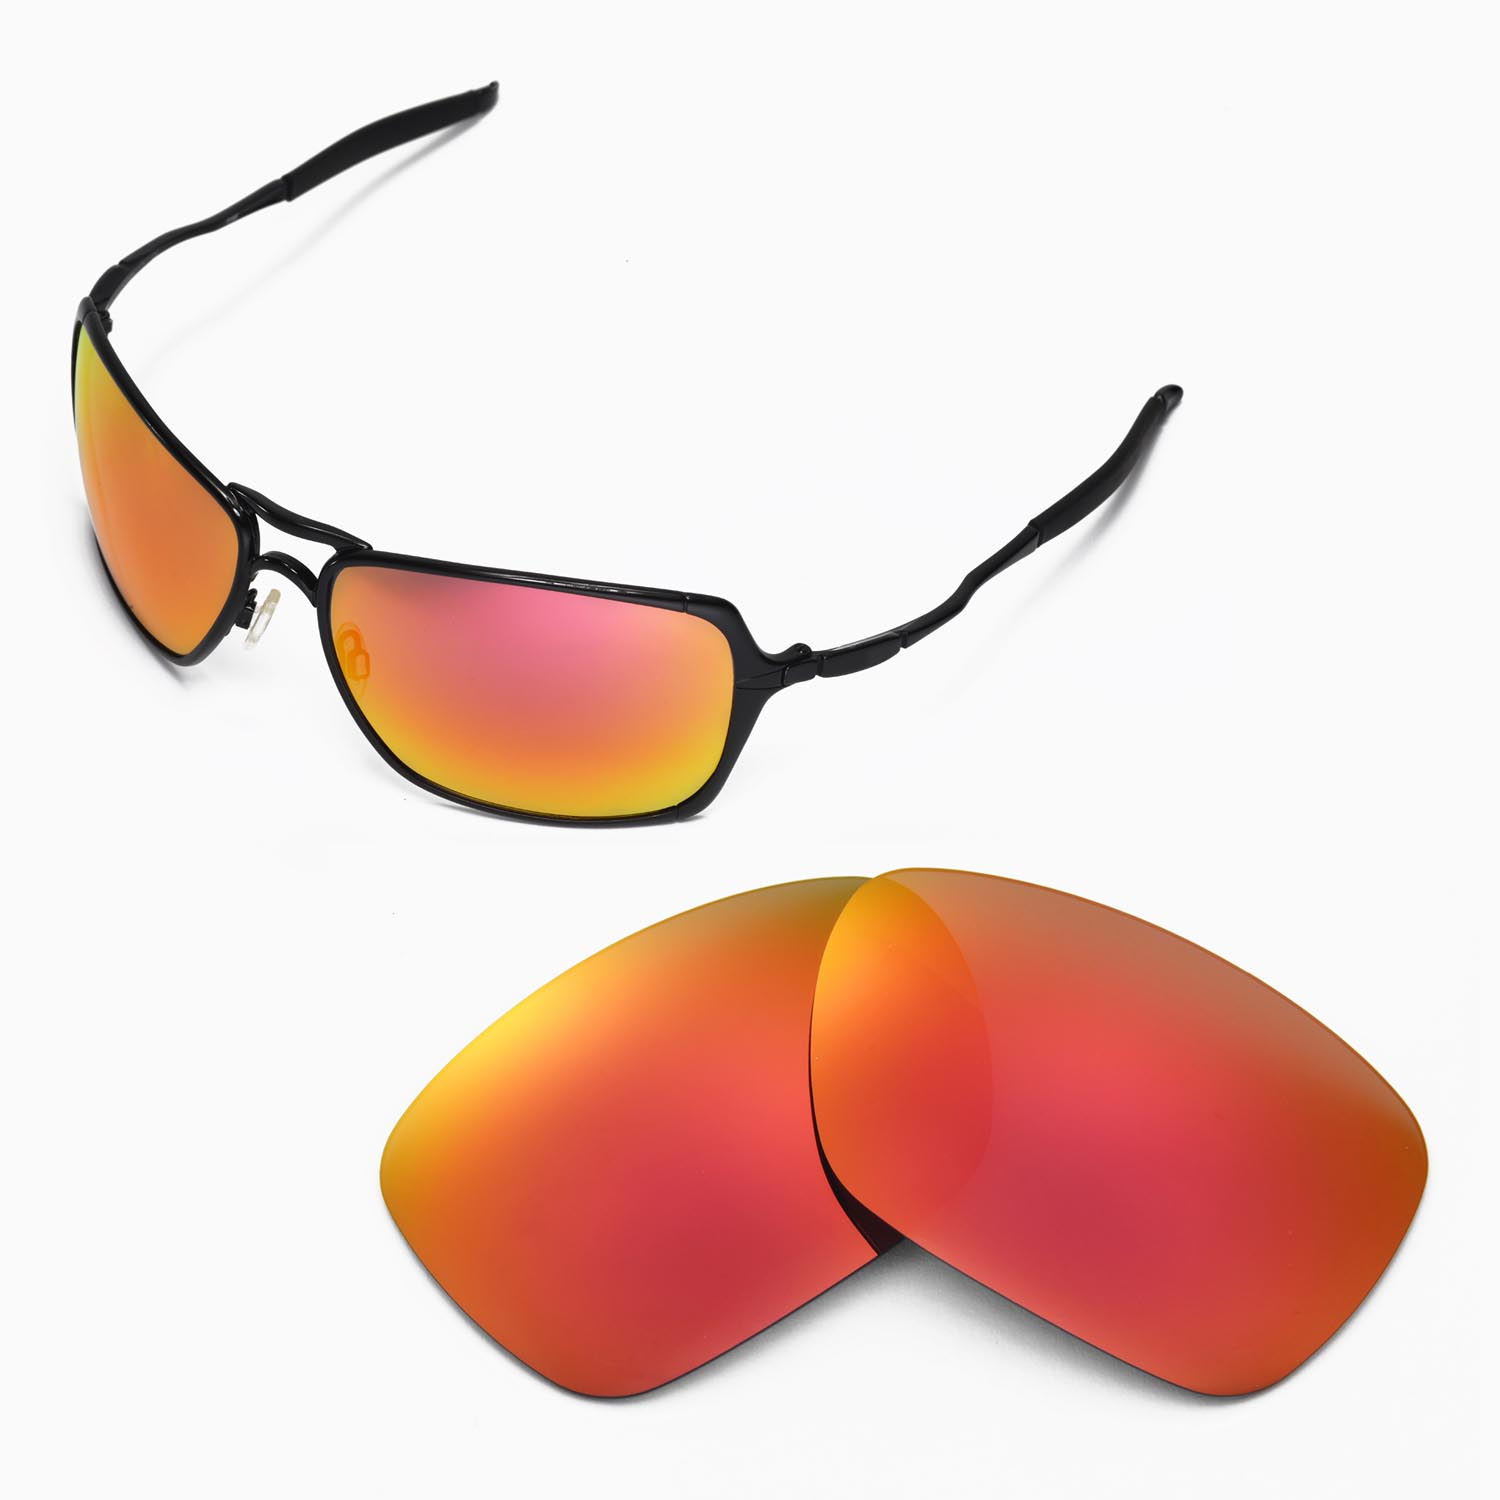 fb2b7643e7be6 Details about New Walleva Polarized Fire Red Replacement Lenses For Oakley  Inmate Sunglasses